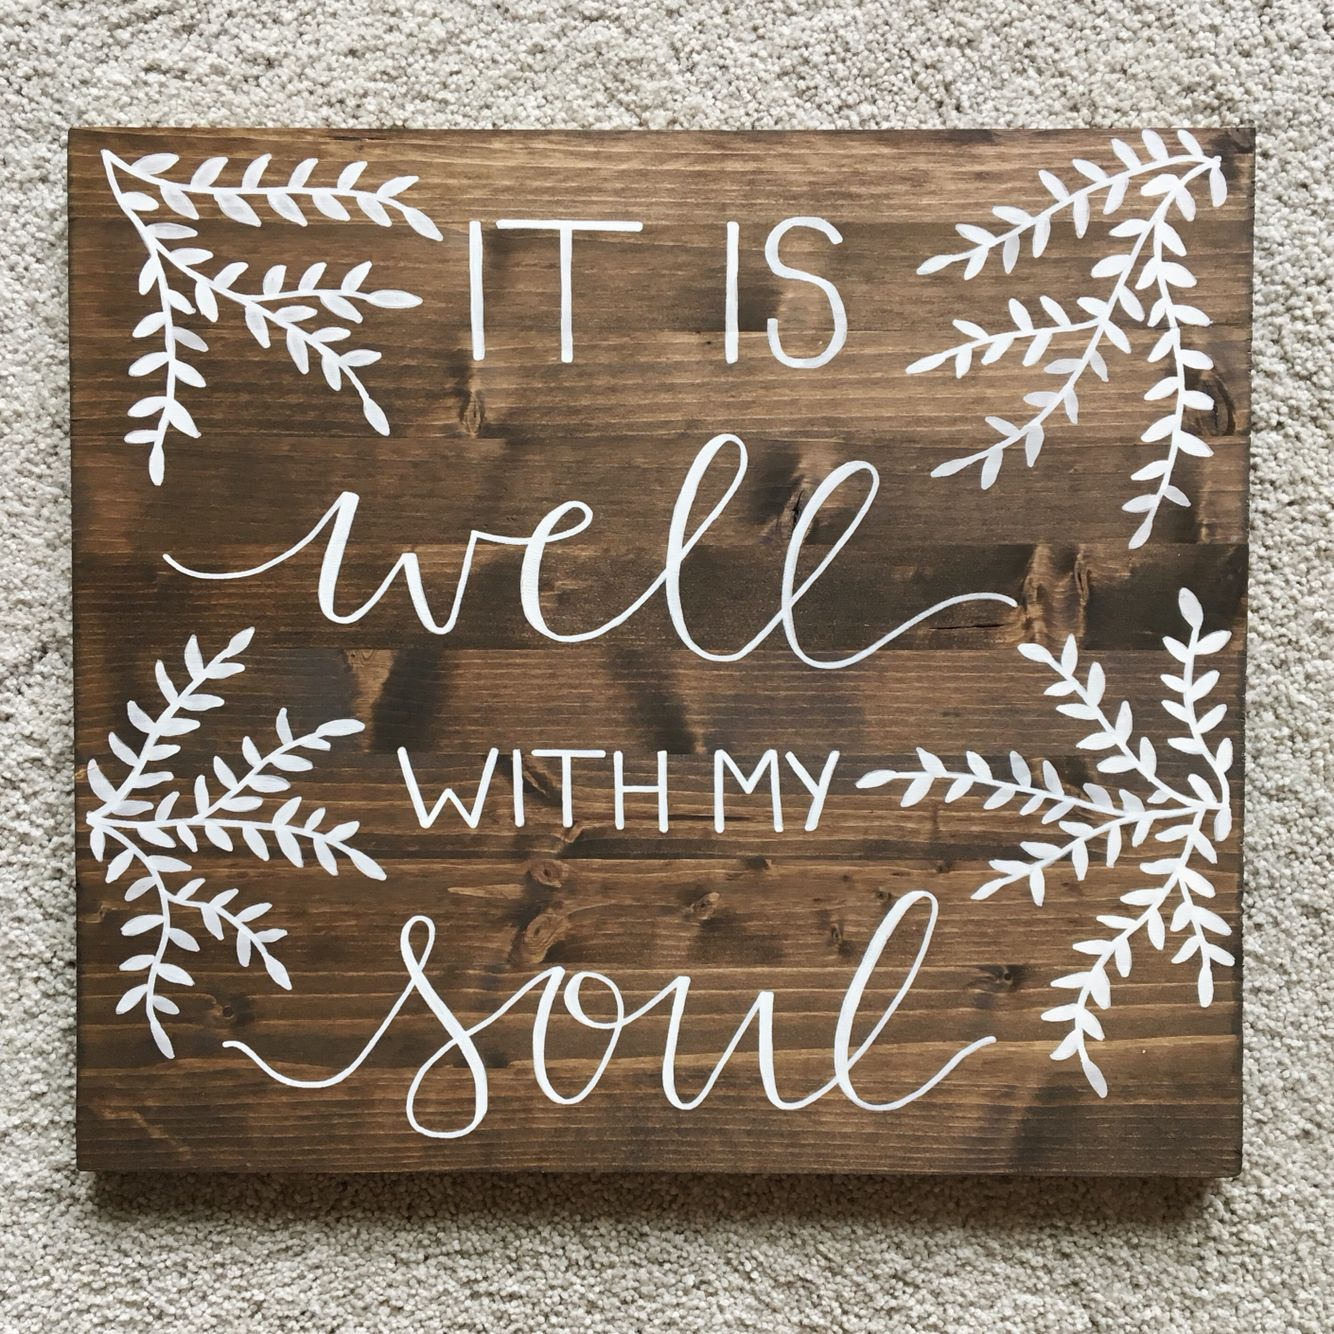 Calligraphy On Wood From Shoppaperjoy.etsy.com